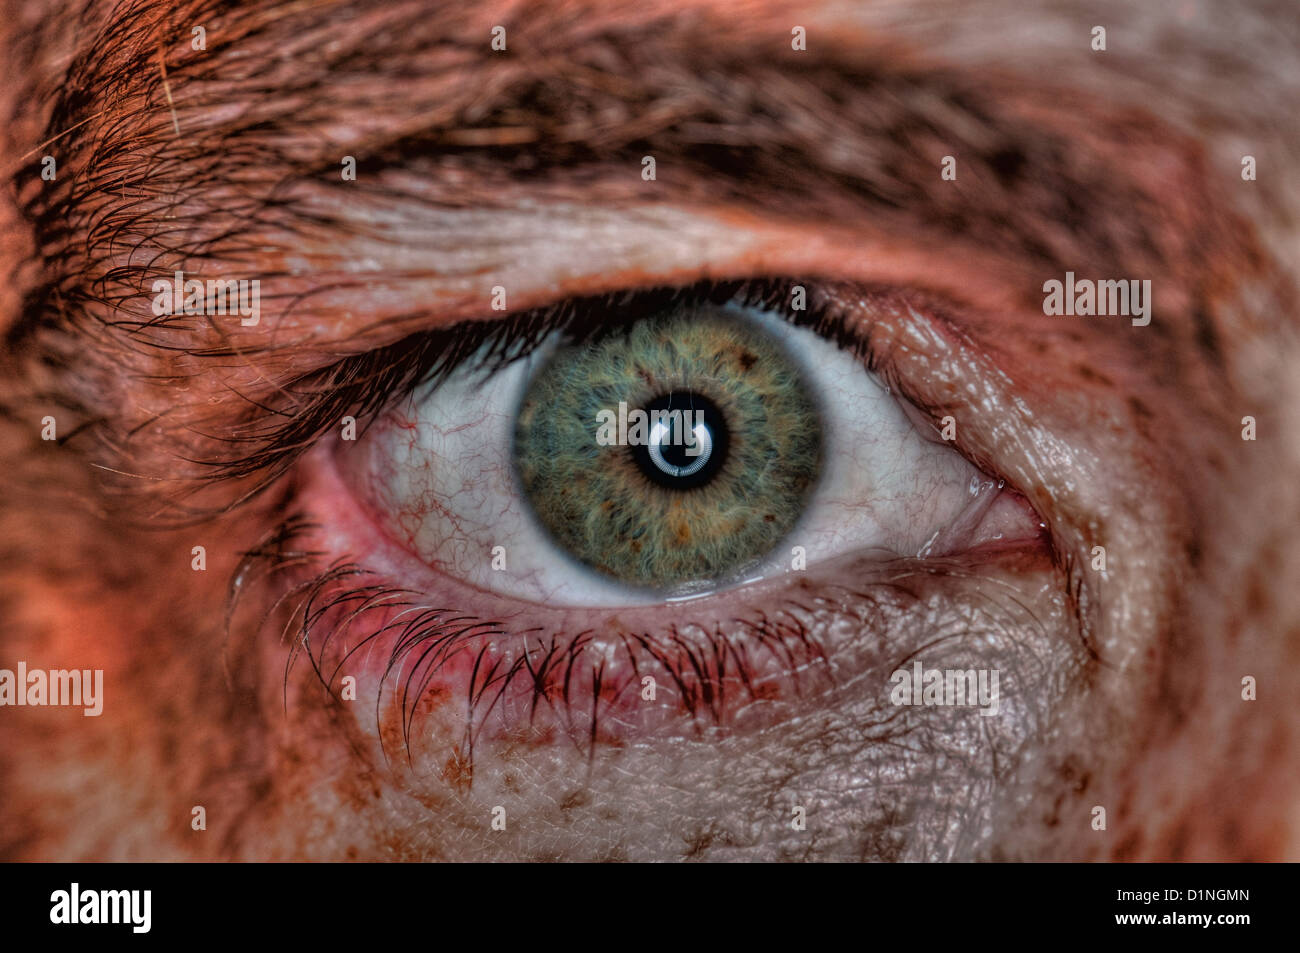 Extreme closeup of a human eye gray  - Stock Image